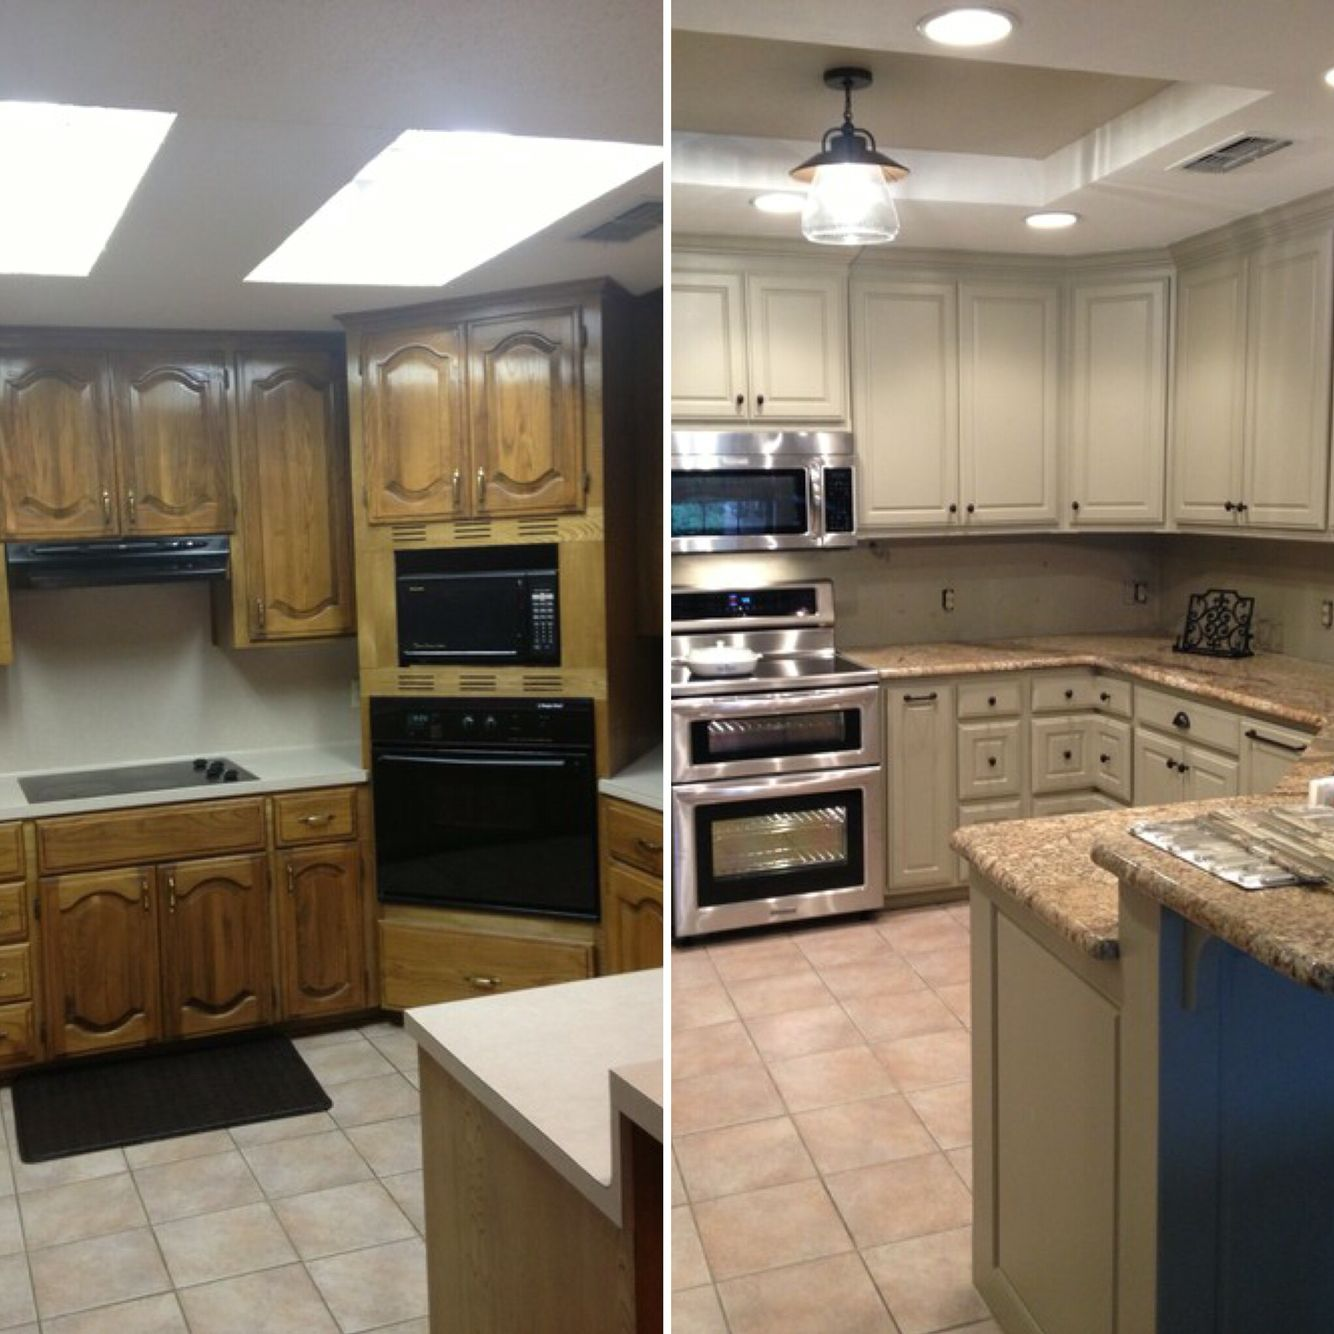 Before and after for updating drop ceiling kitchen ...